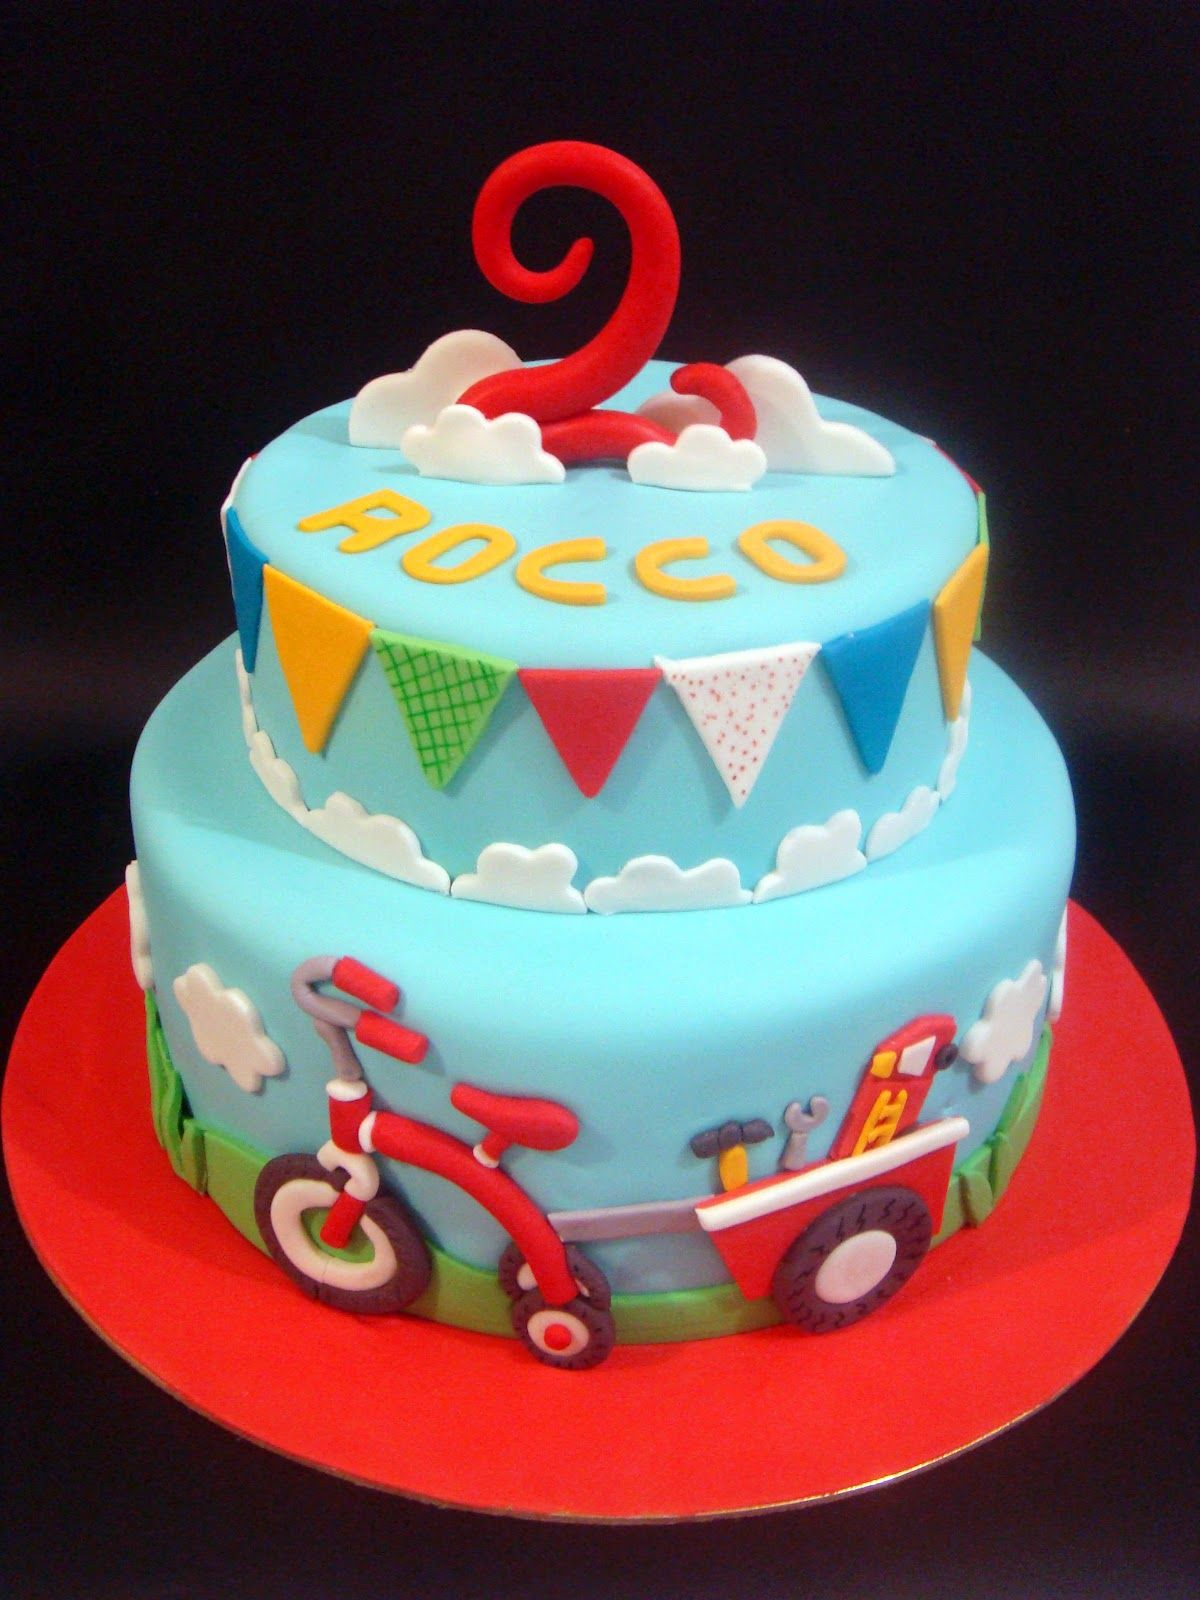 Butter Hearts Sugar Tricycle Birthday Cake Birthday Cake Kids Birthday Cake Pictures Cake